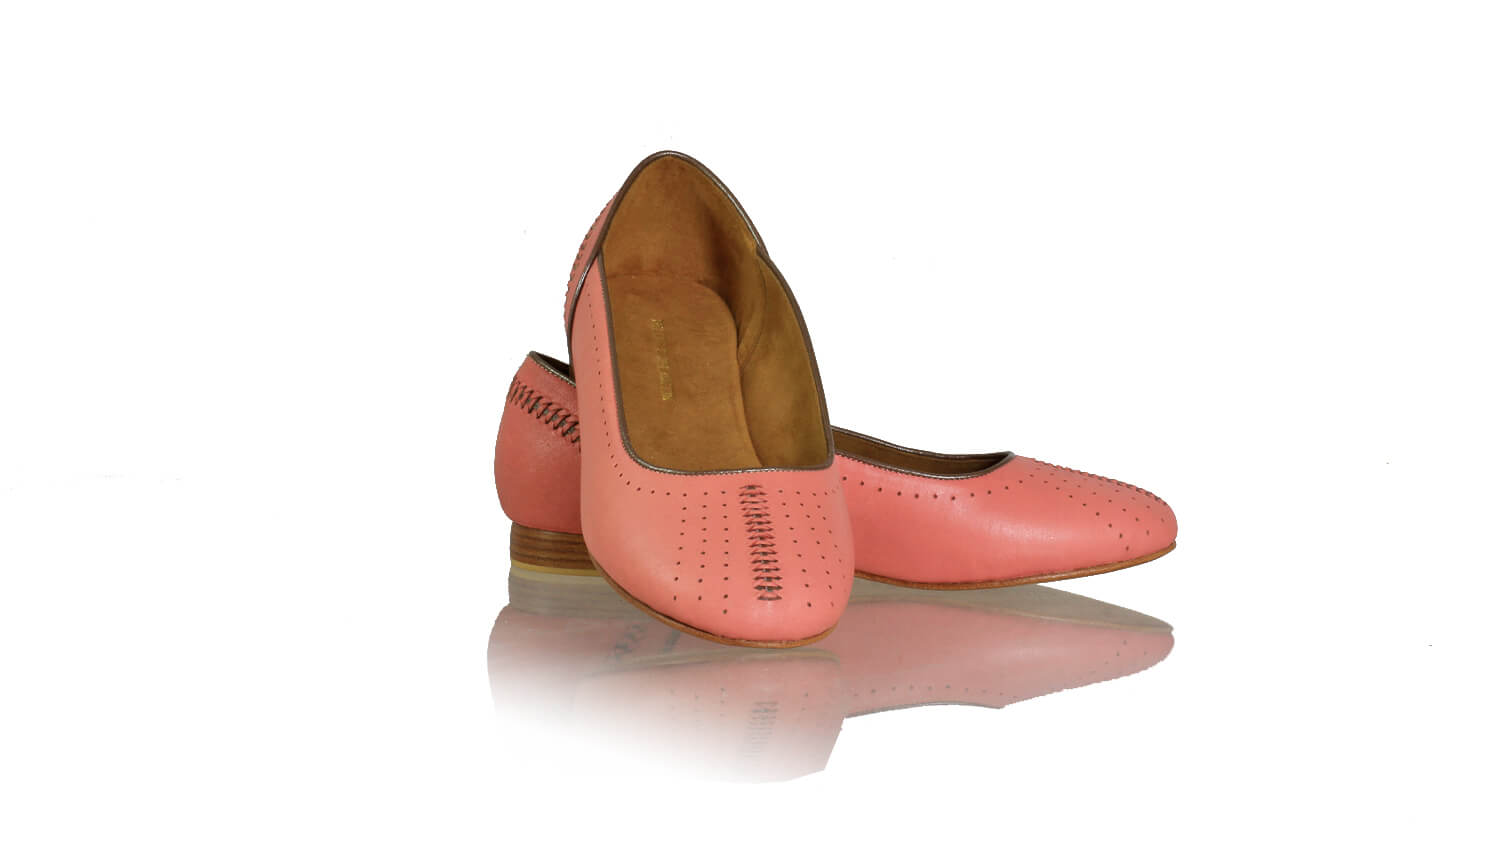 Leather-shoes-Donna 20mm Ballet - Pink & Bronze-flats ballet-NILUH DJELANTIK-NILUH DJELANTIK